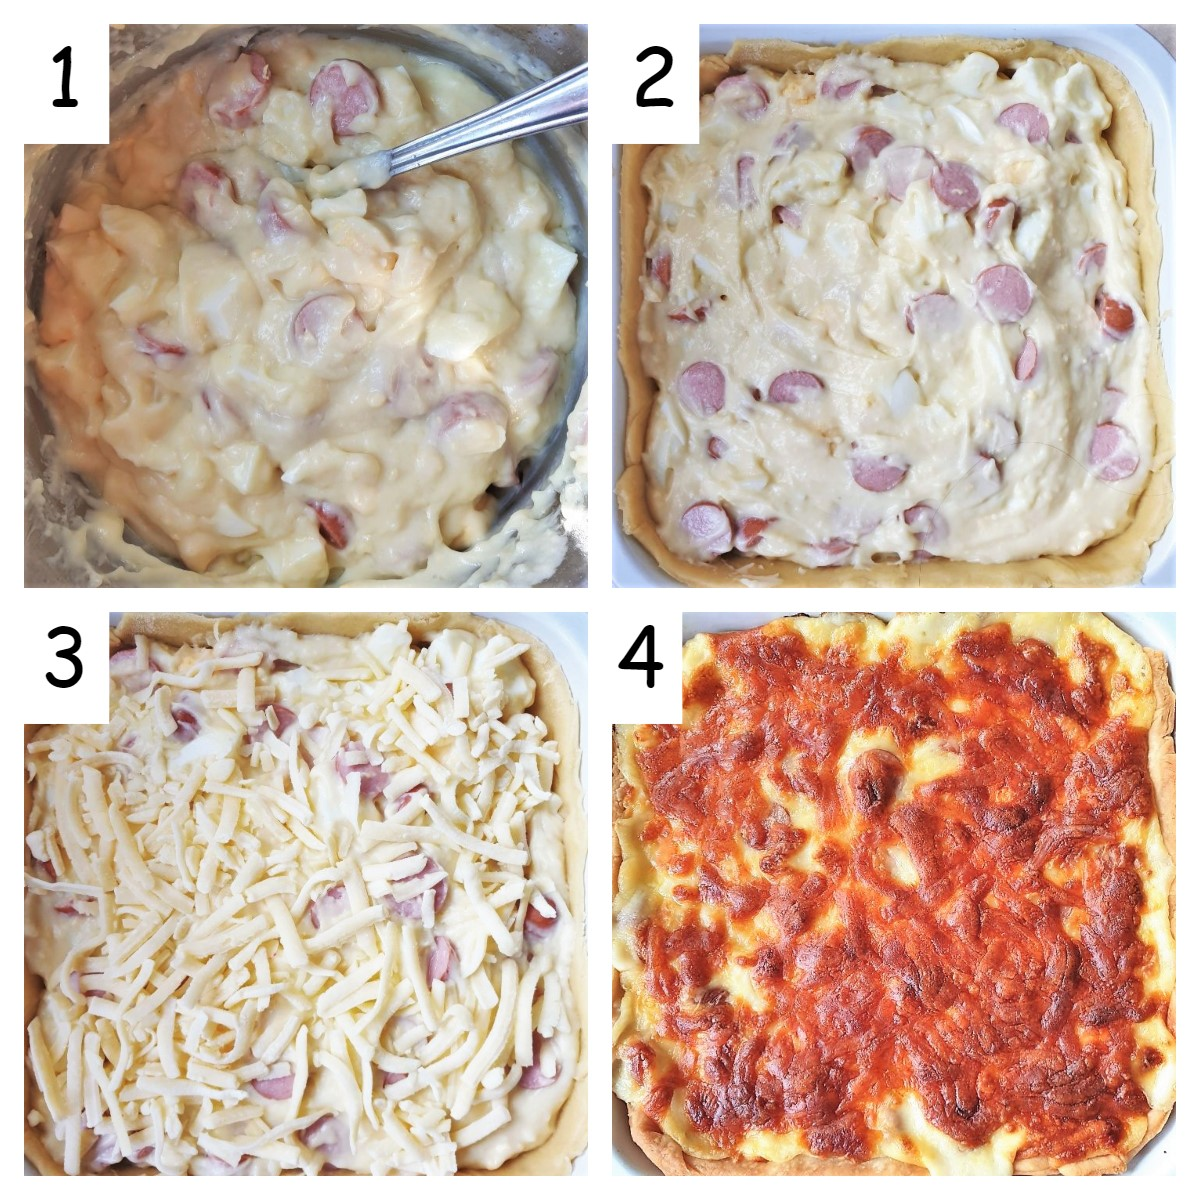 Collage of 4 images showing steps for assembling the tart.